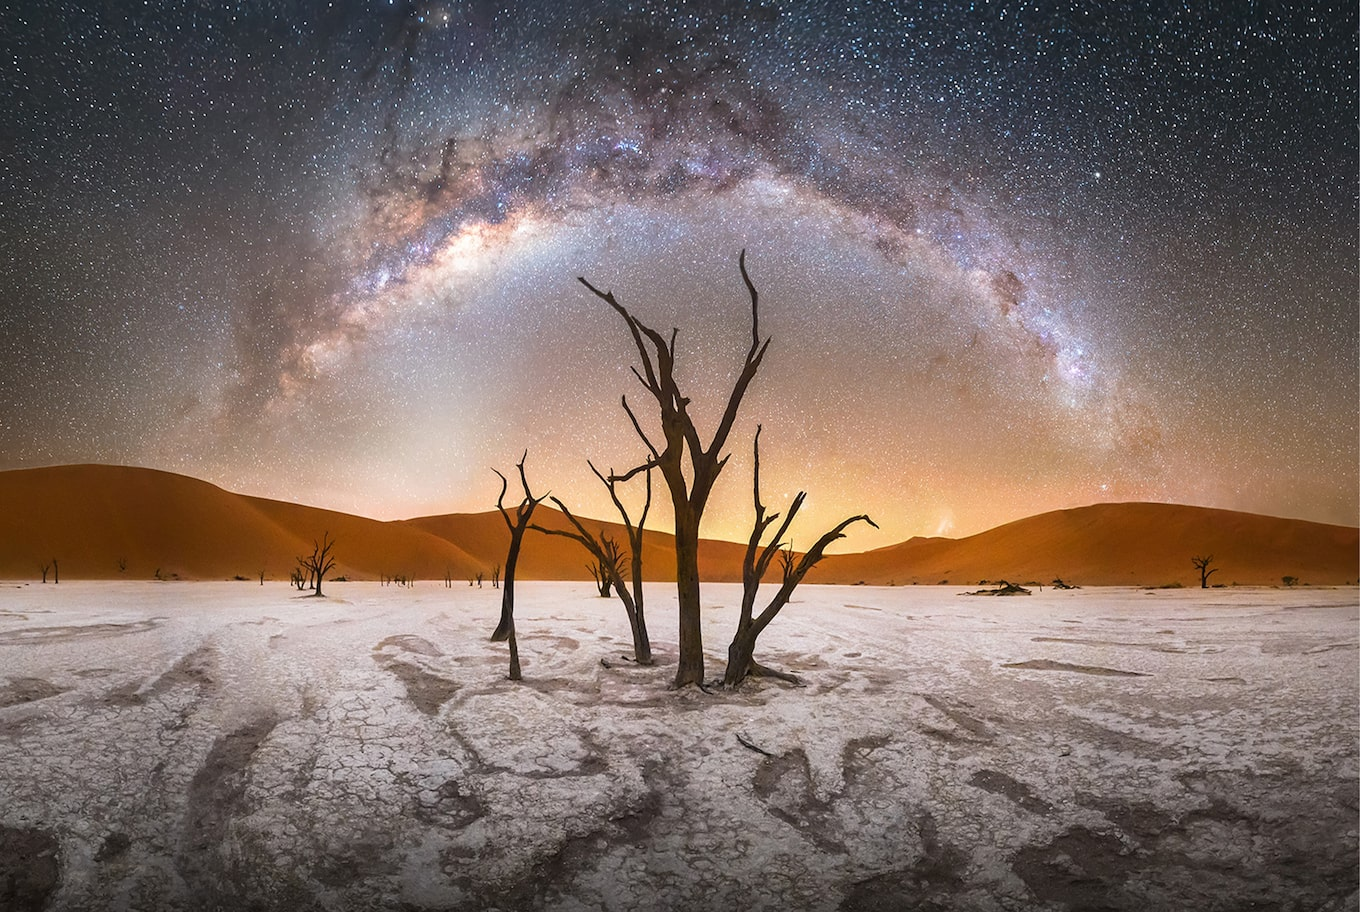 Stefan Liebermann sony alpha 7s leafless trees stand out in front of the milky way